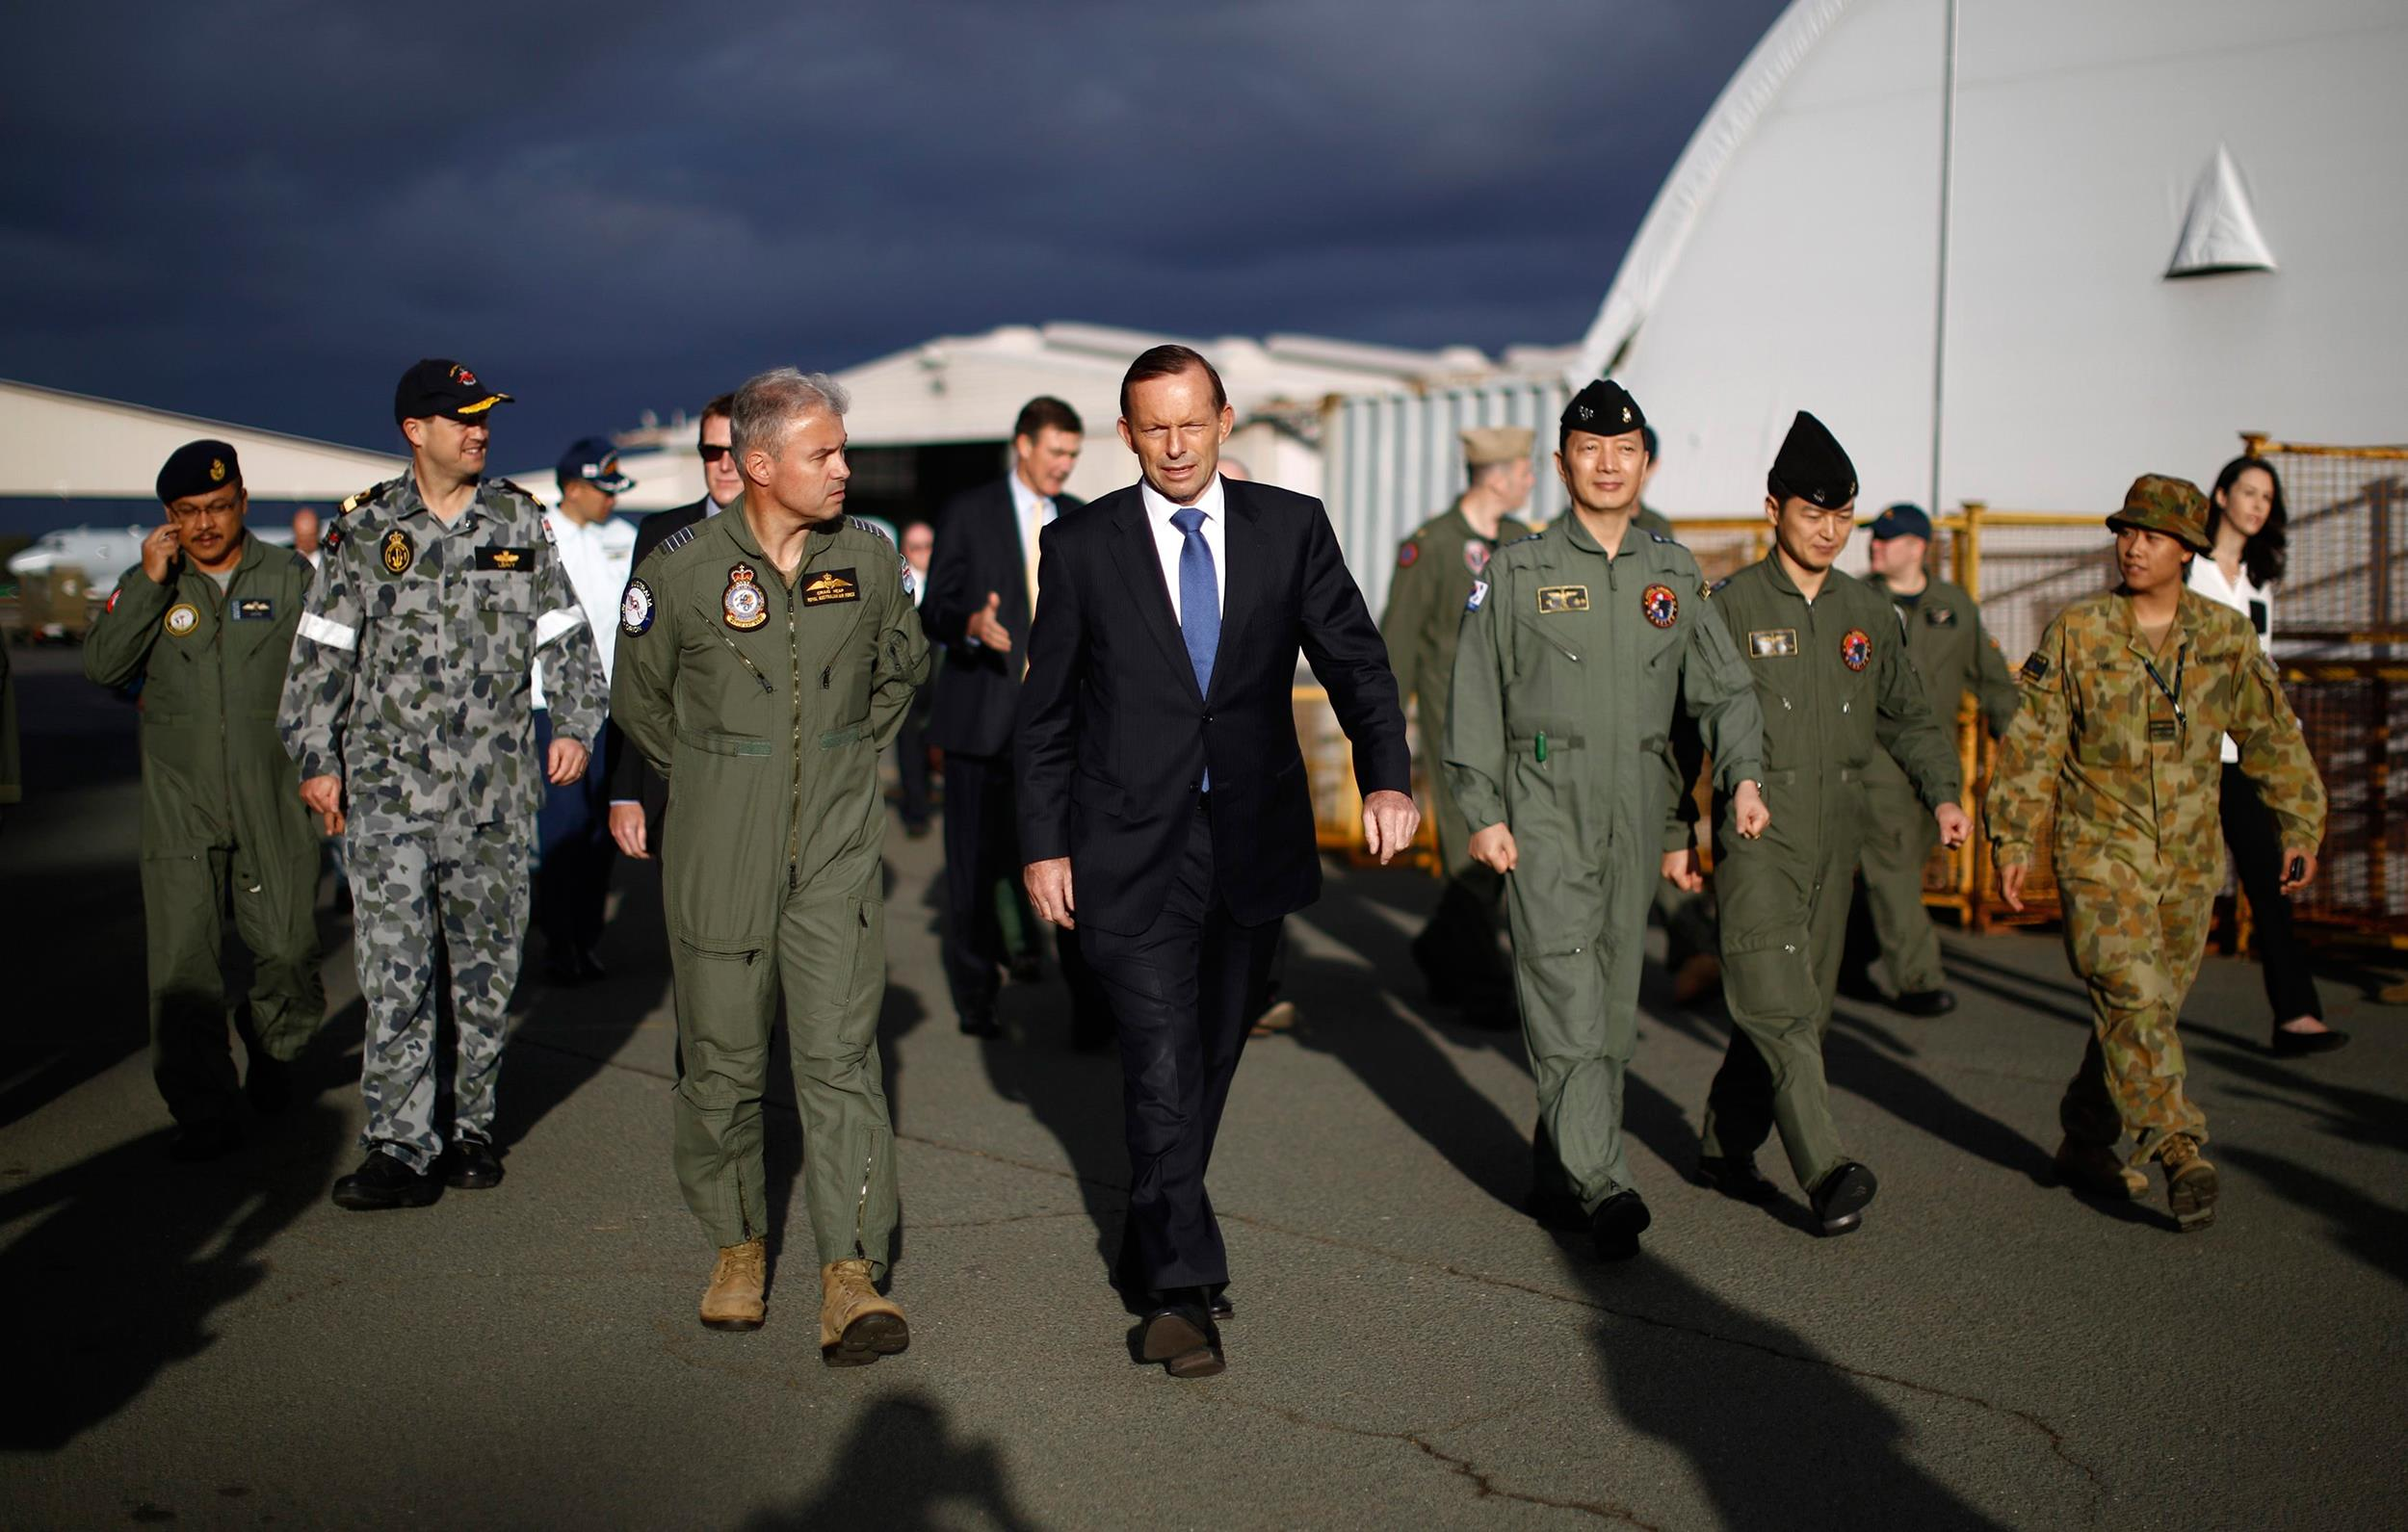 Image: Australia's Prime Minister Tony Abbott walks with Australia's Air Force Group Commander Craig Heap